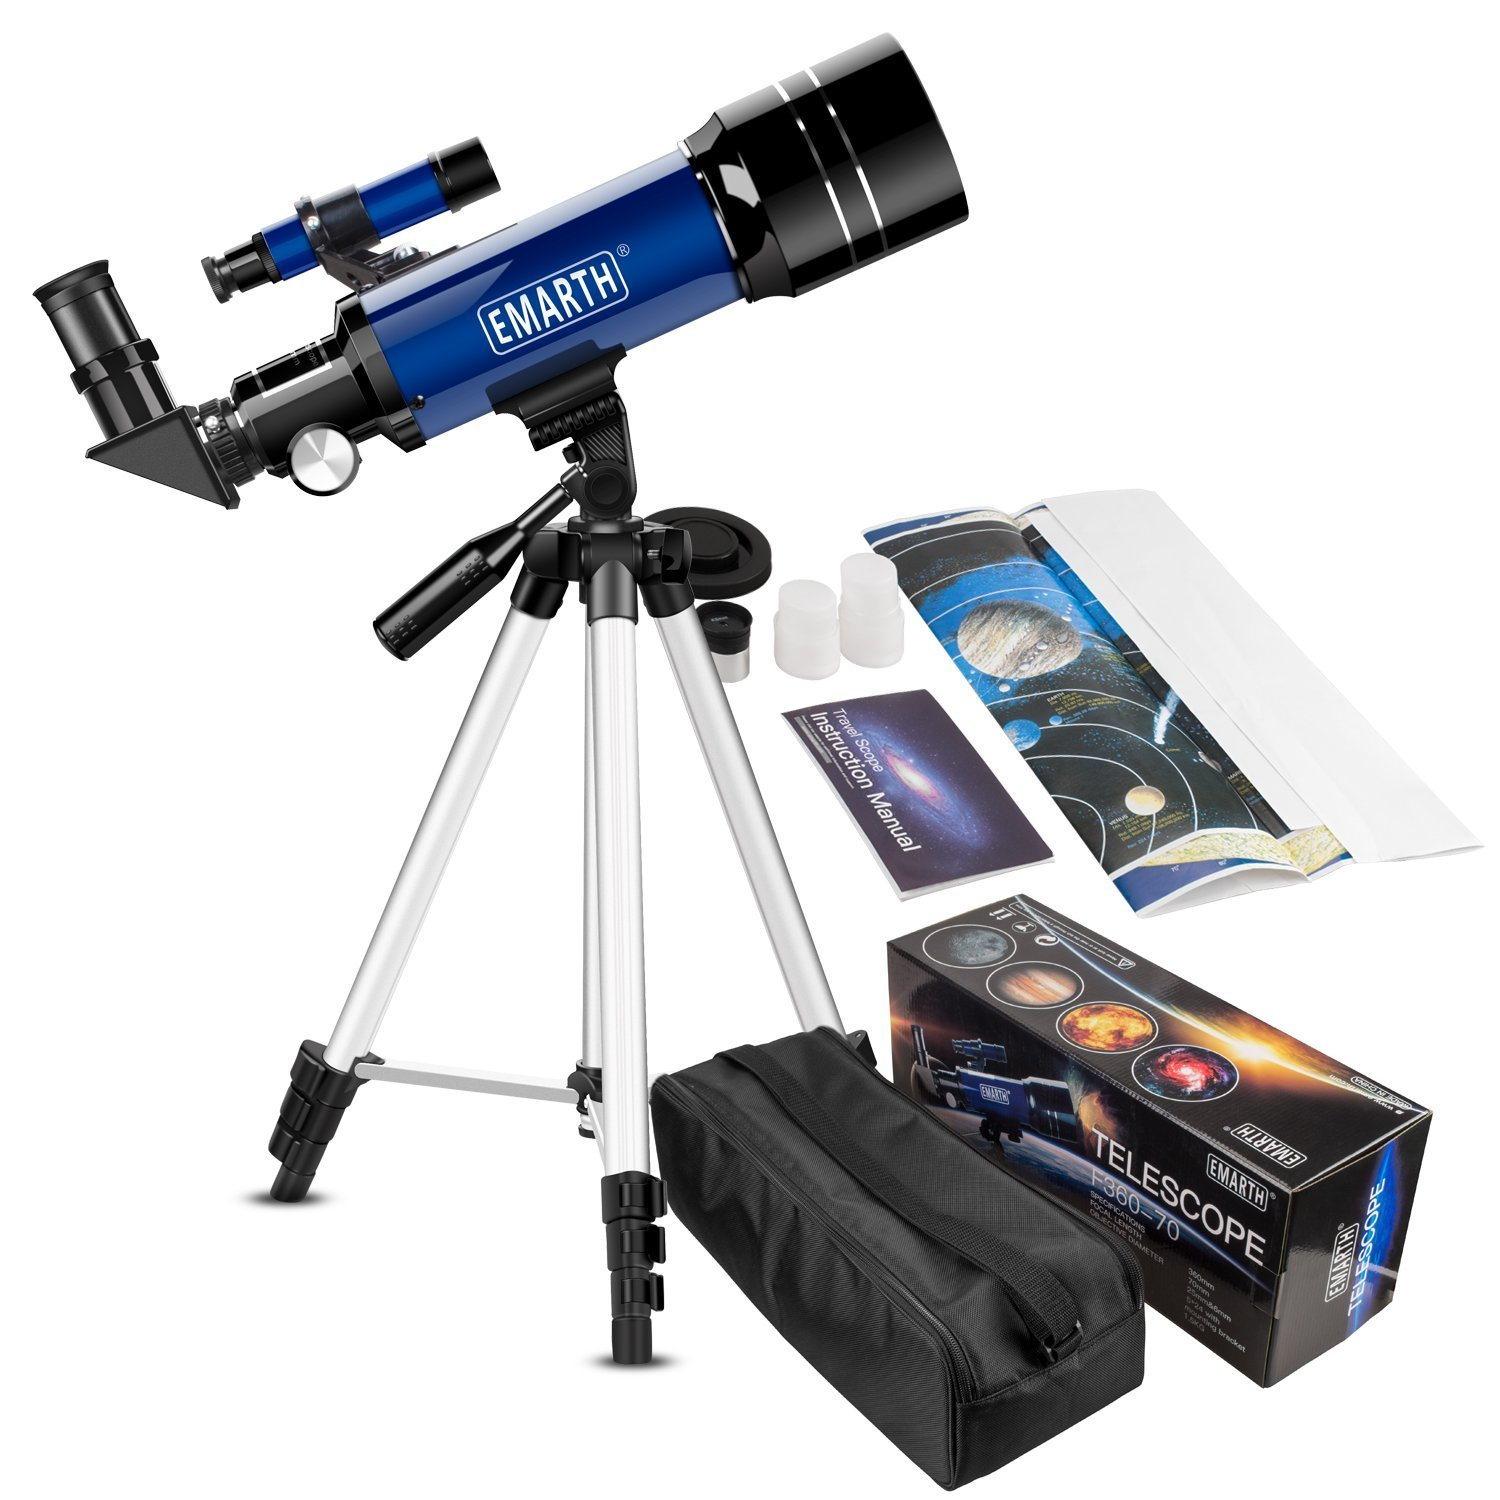 Emarth Telescopio da 70mm per bambini e principianti di astronomia, Travel Scope con treppiede e mirino regolabile e due oculari (K25mm e K10mm) - Perfetto per i bambini educativi e regali Unheard